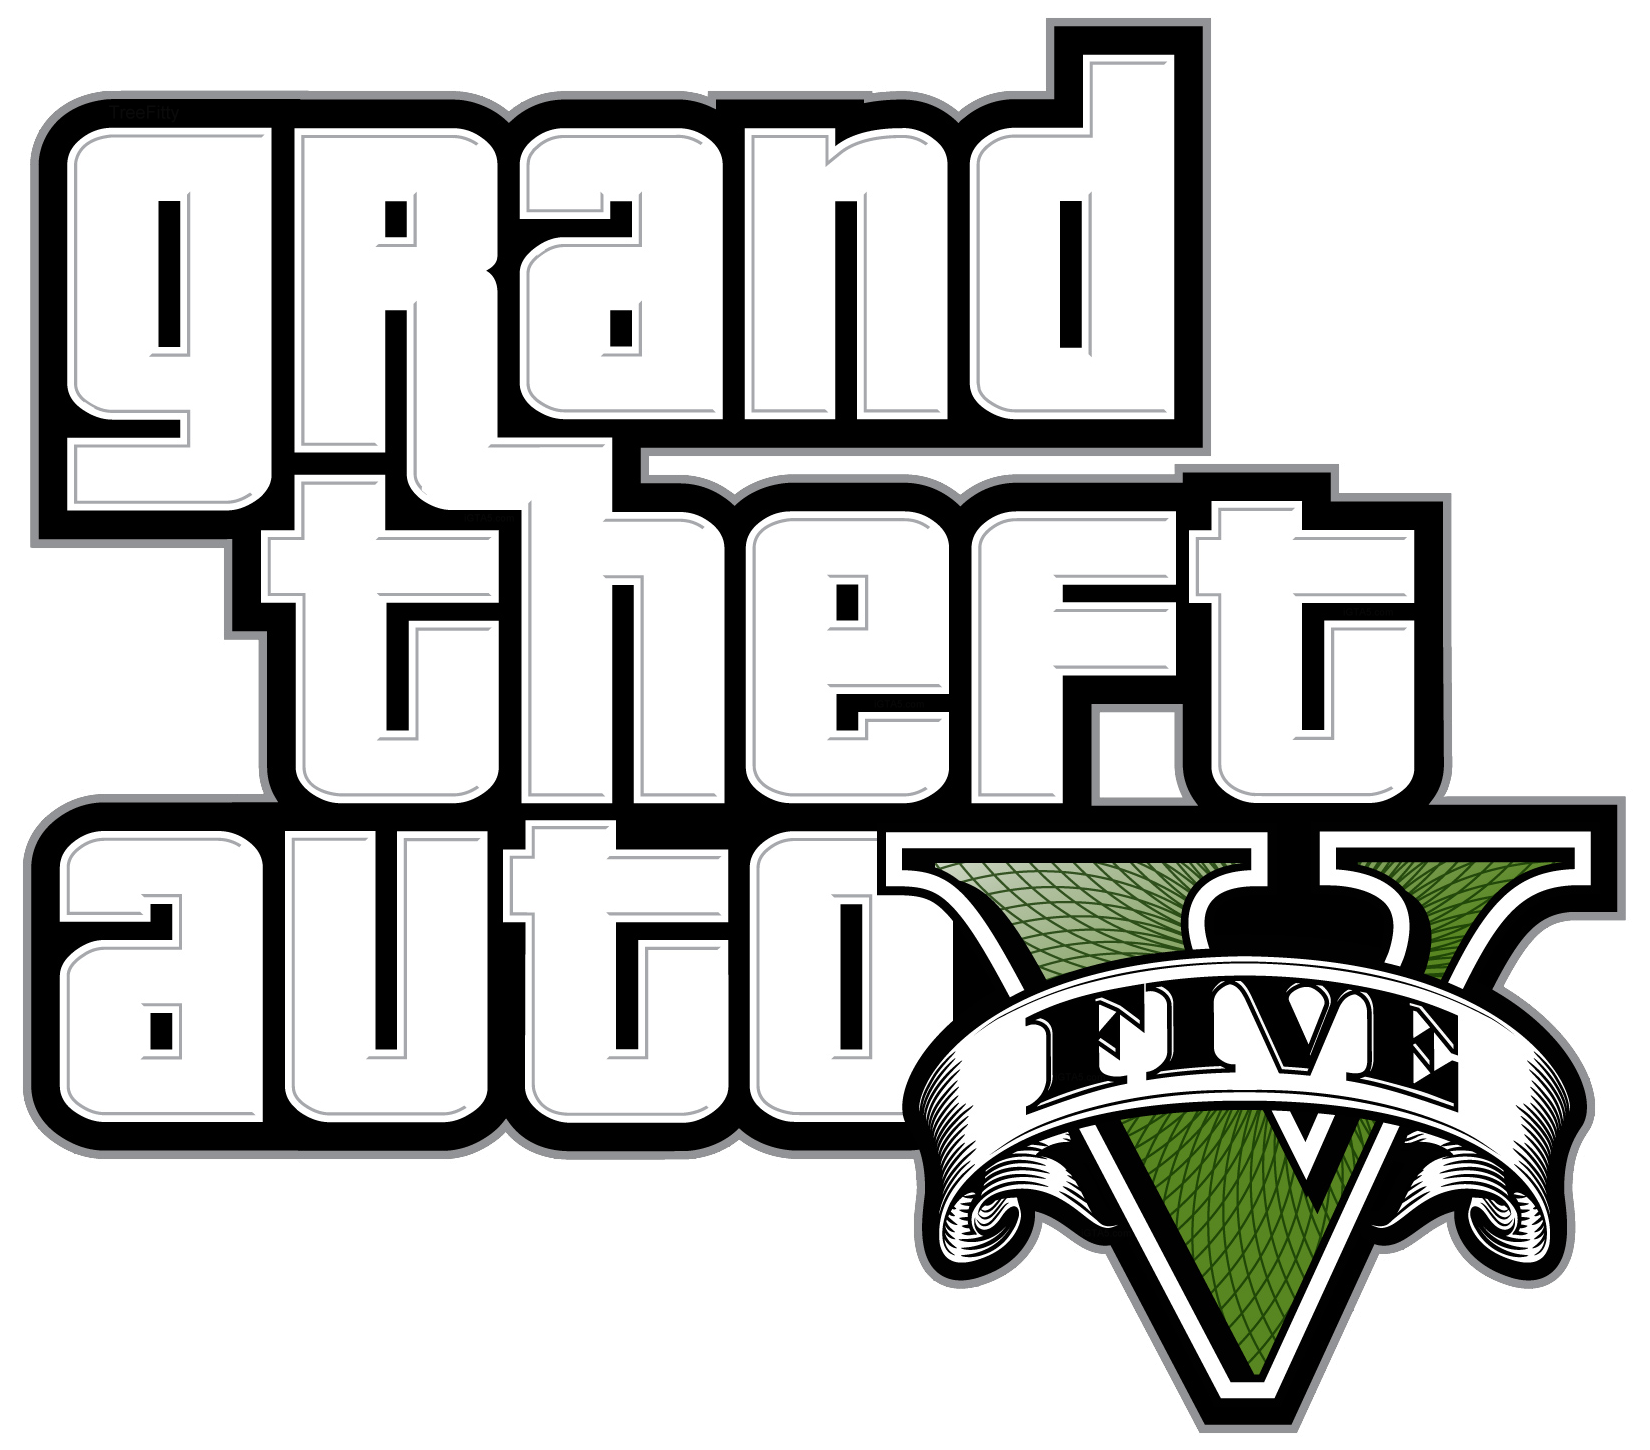 clipart black and white library Youtube clipart gta 5. Transparent free for .